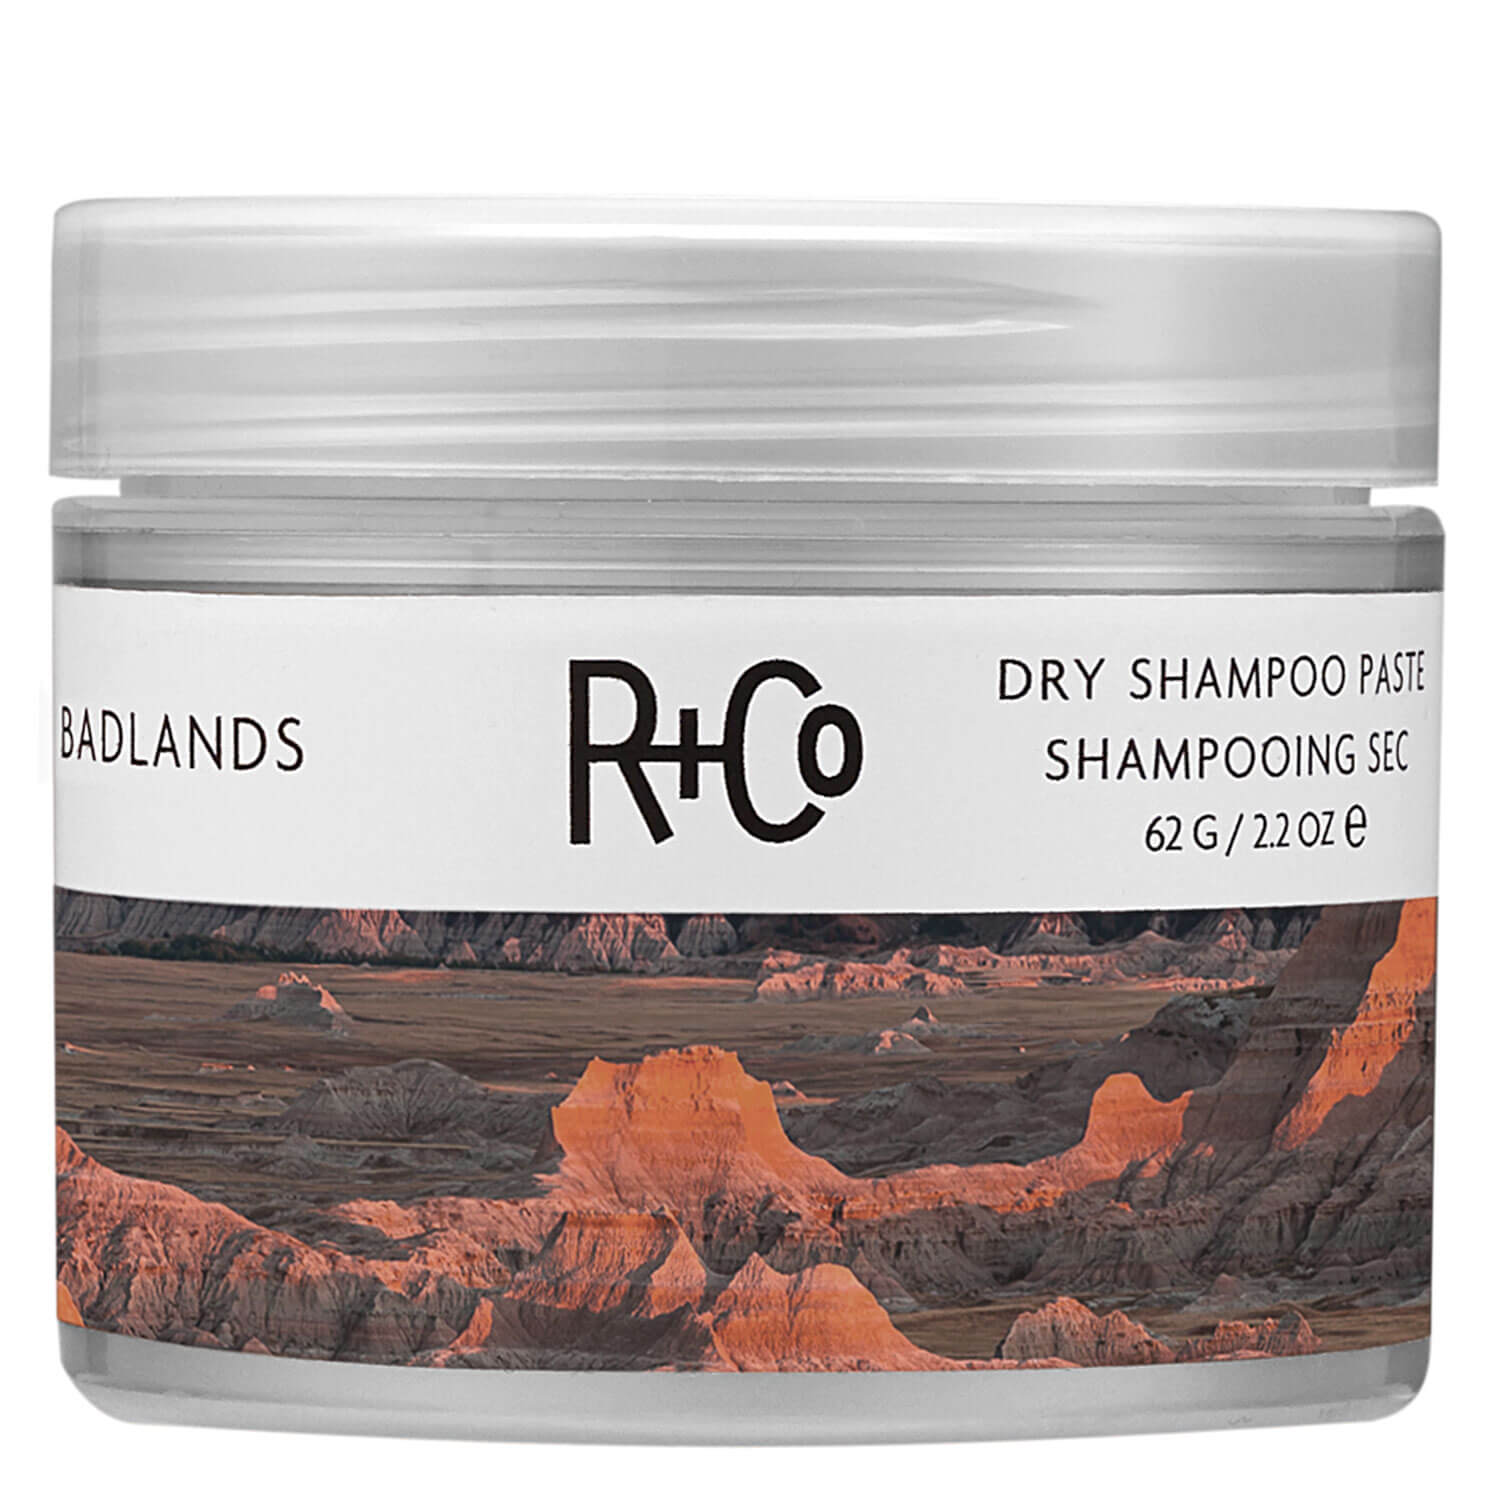 R+Co - Badlands Dry Shampoo Paste